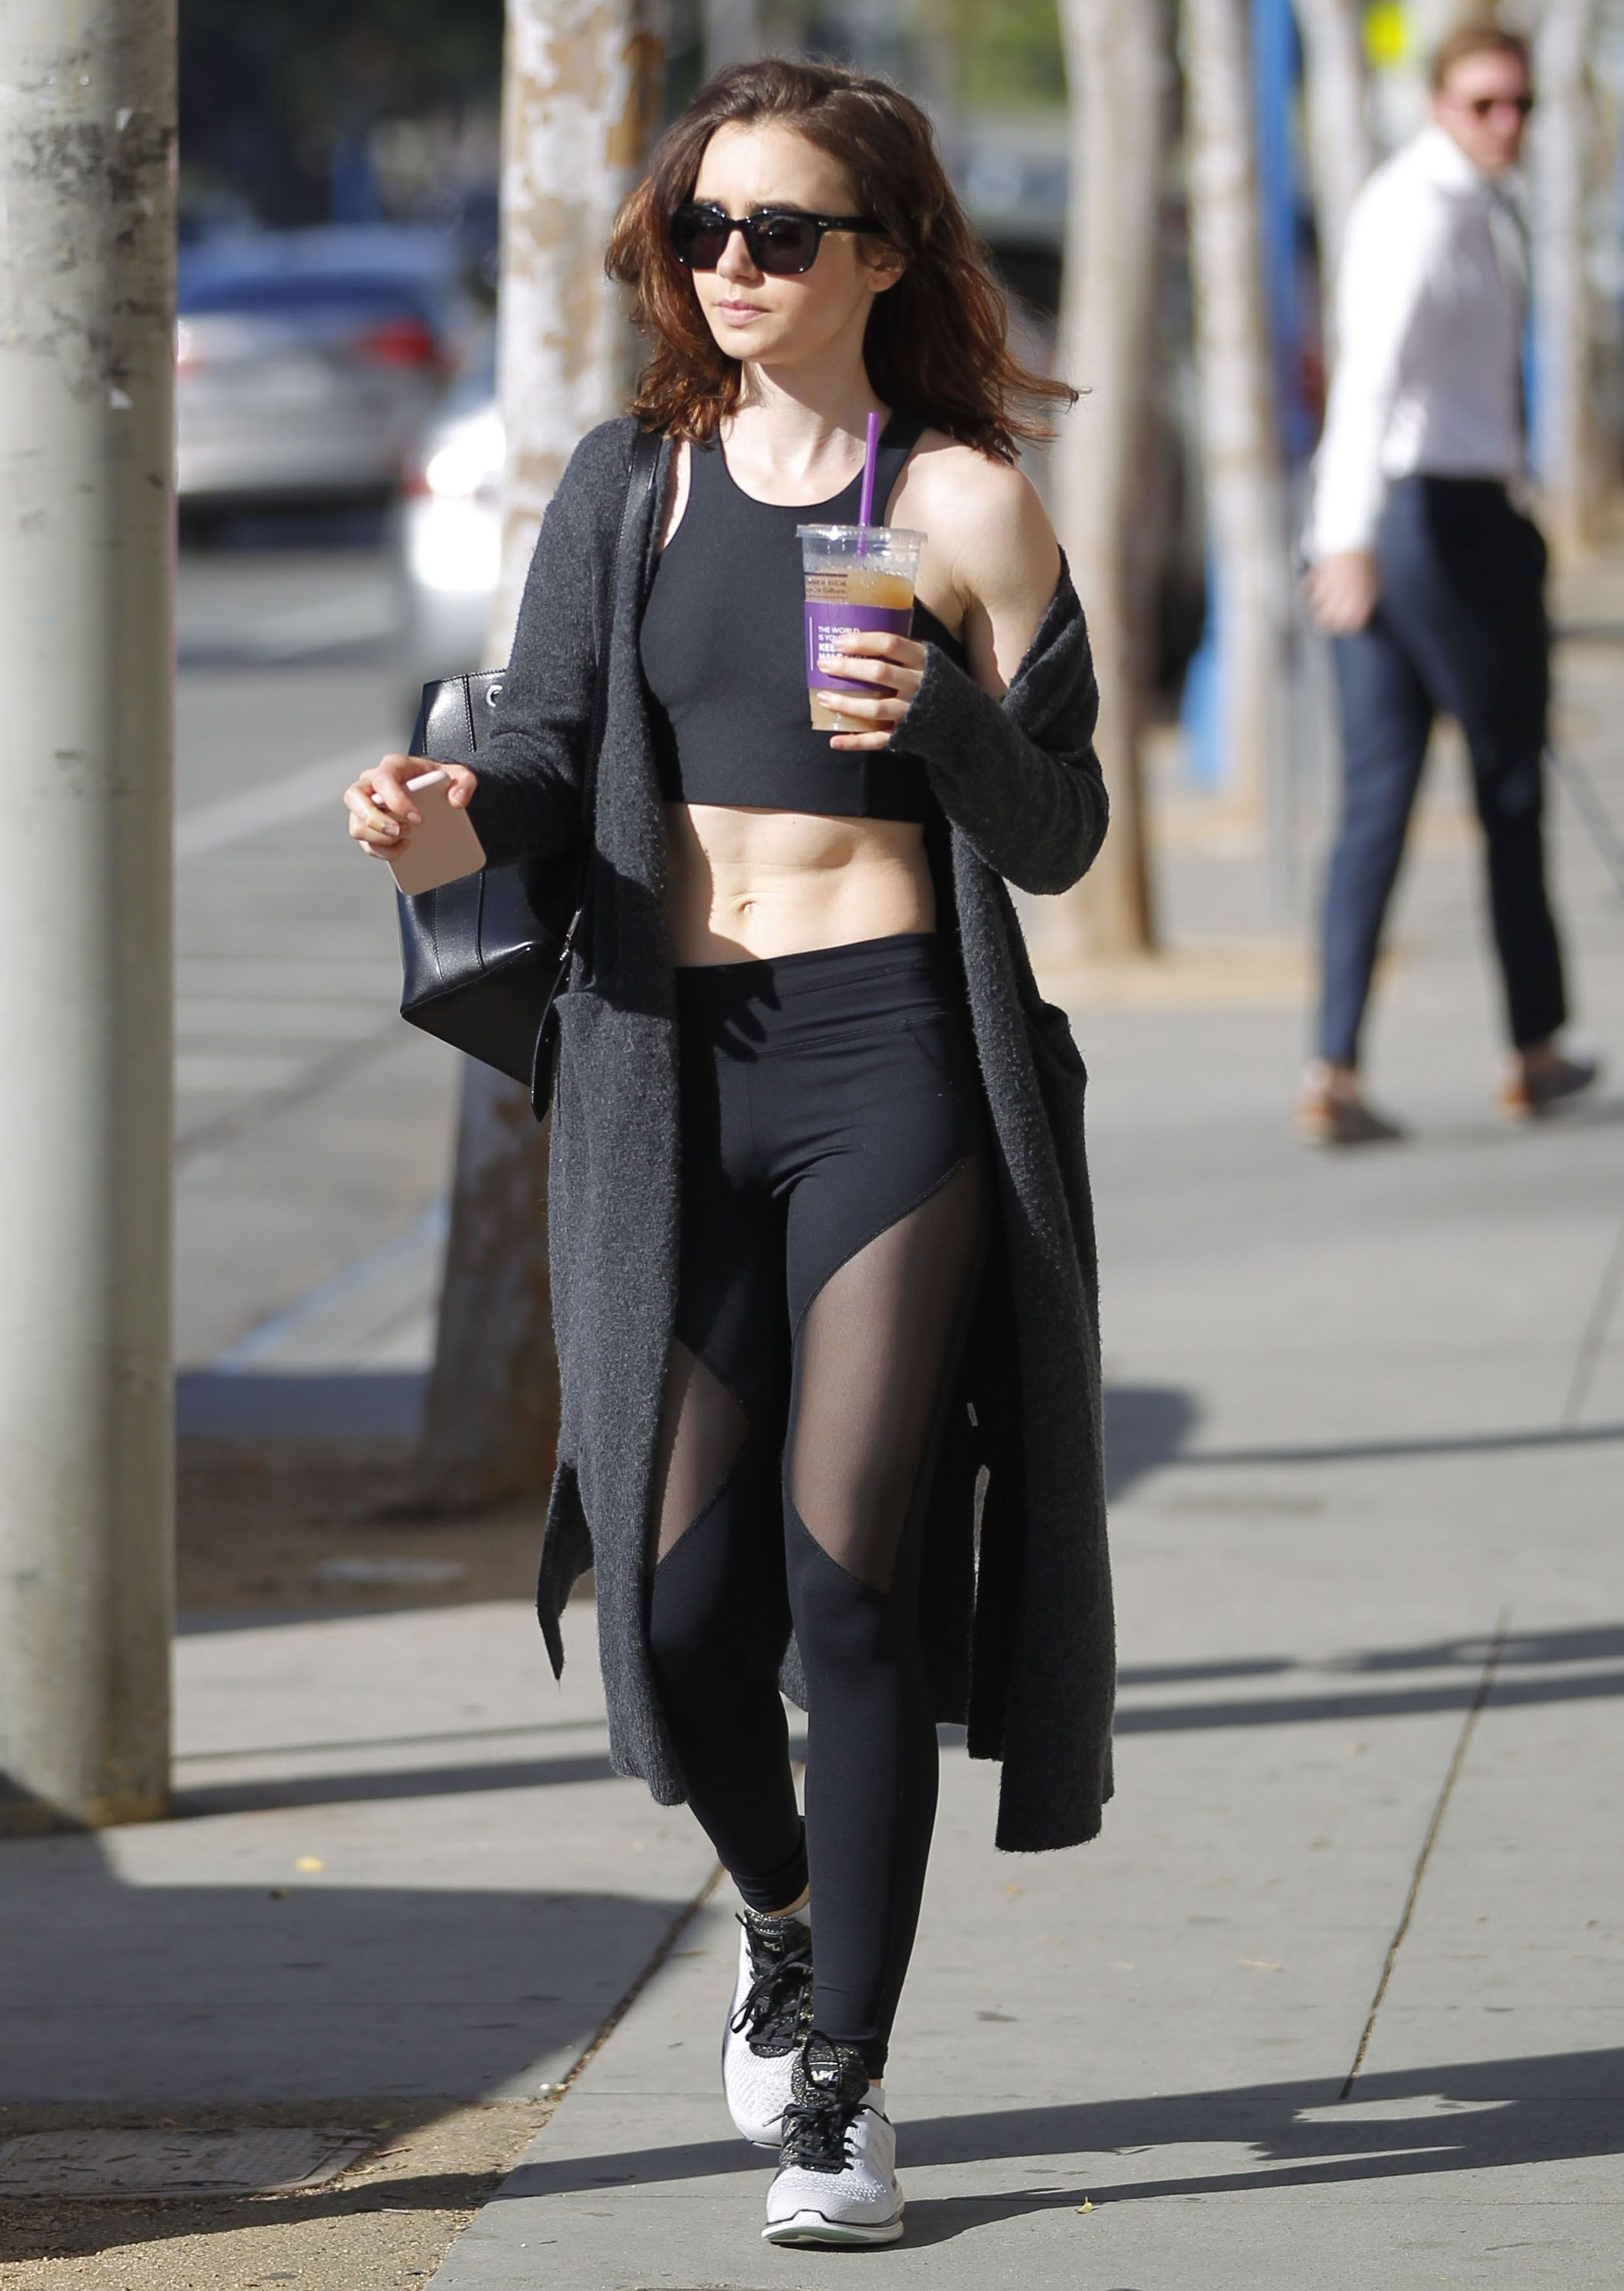 Lily Collins out after finishing gym